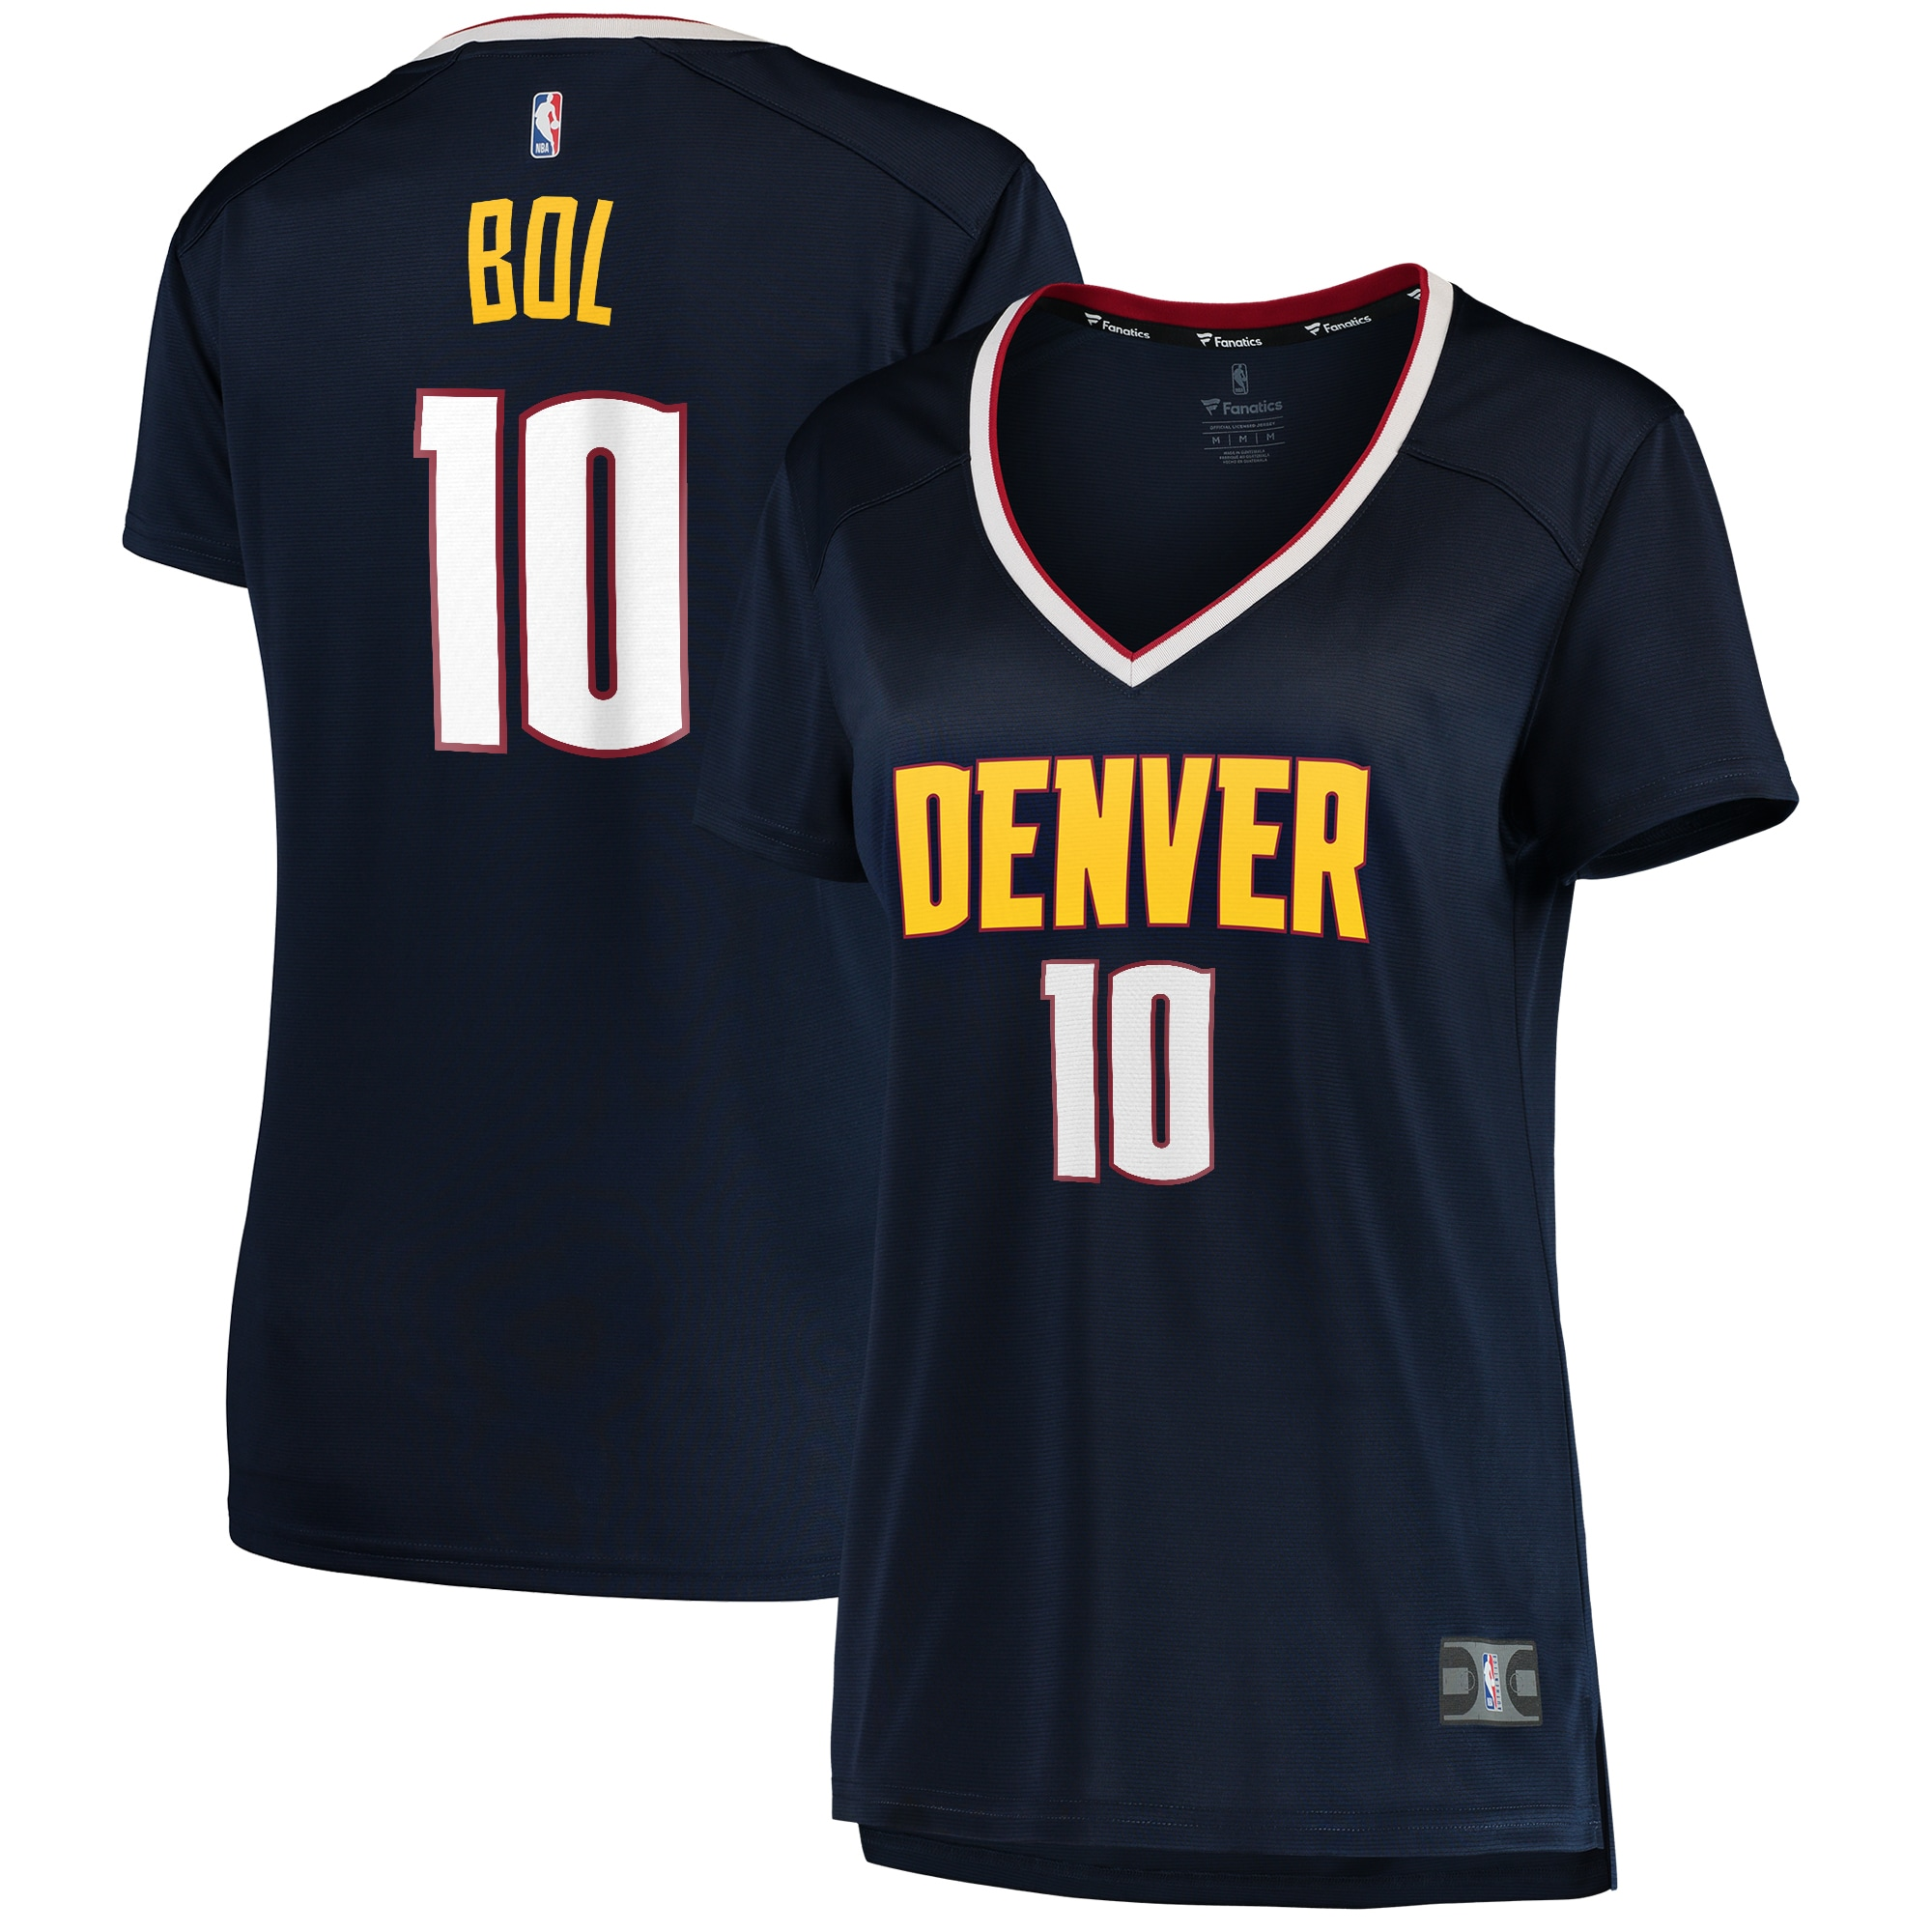 Bol Bol Denver Nuggets Fanatics Branded Women's Fast Break Replica Jersey Navy - Icon Edition